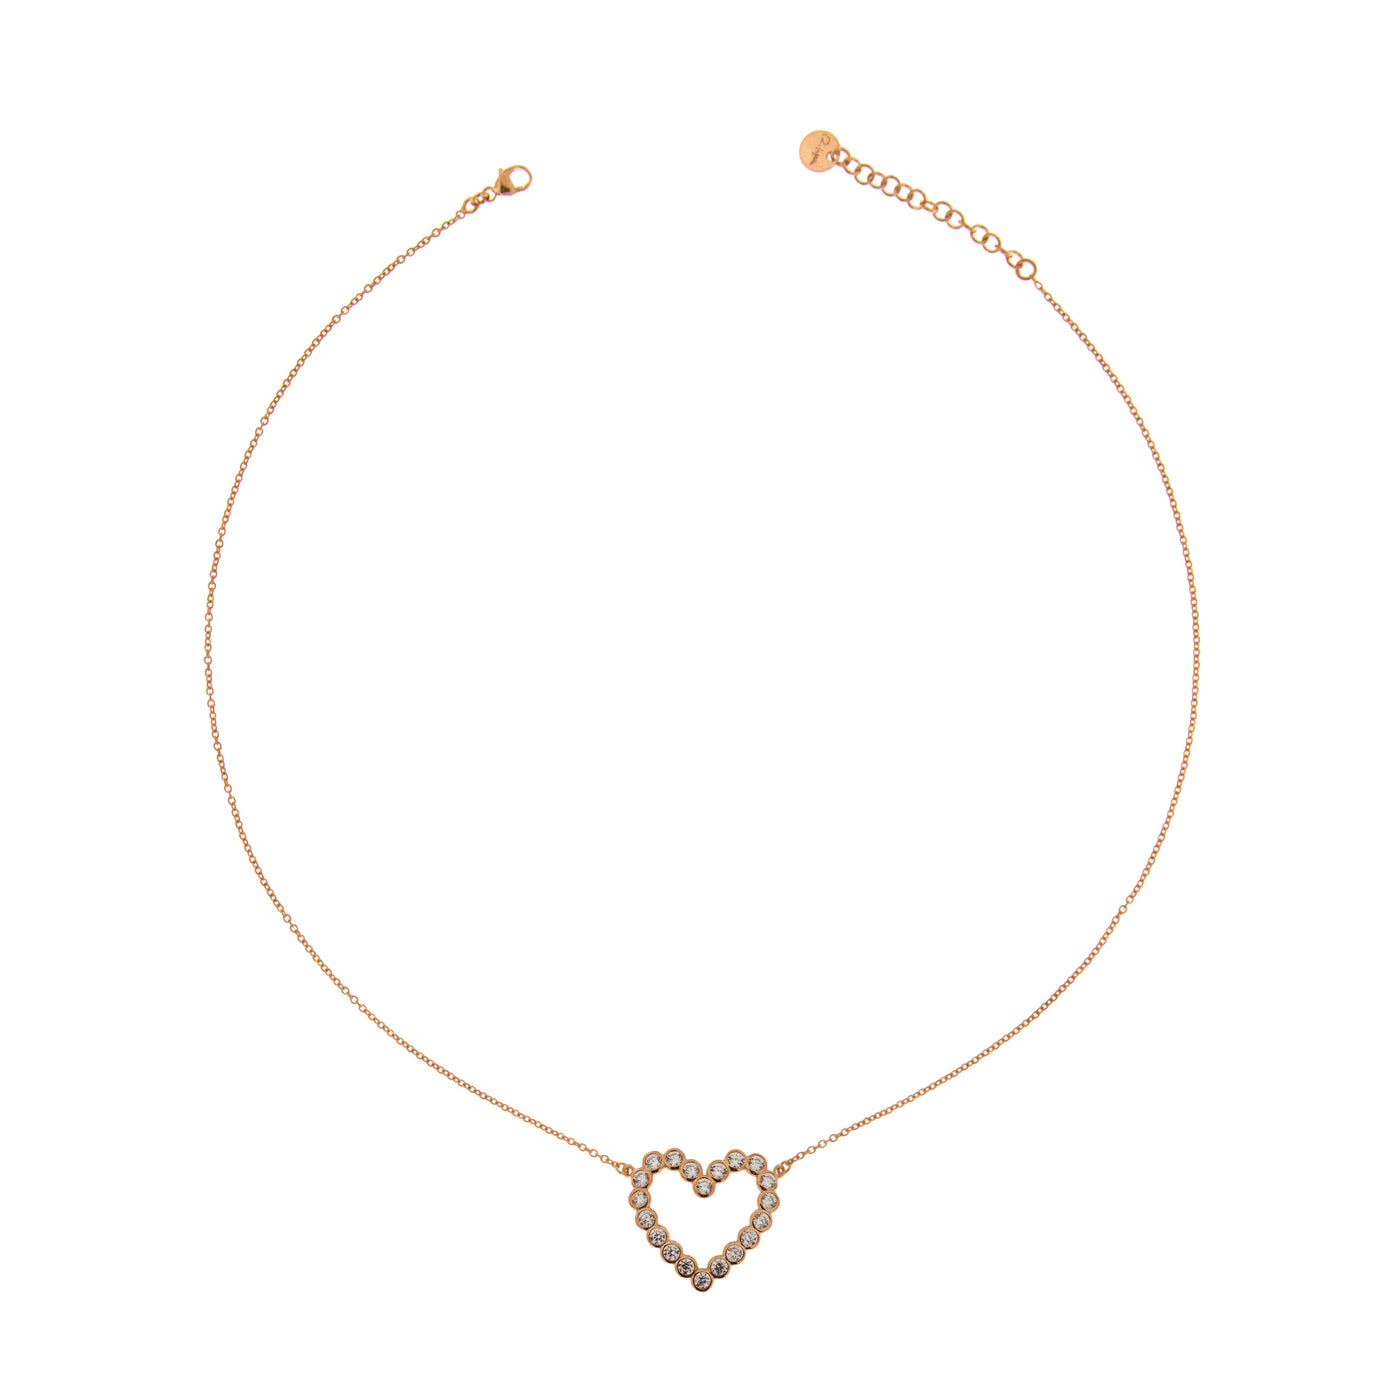 Chokers - Chain Choker with Zircons - Heart - 1 | Rue des Mille